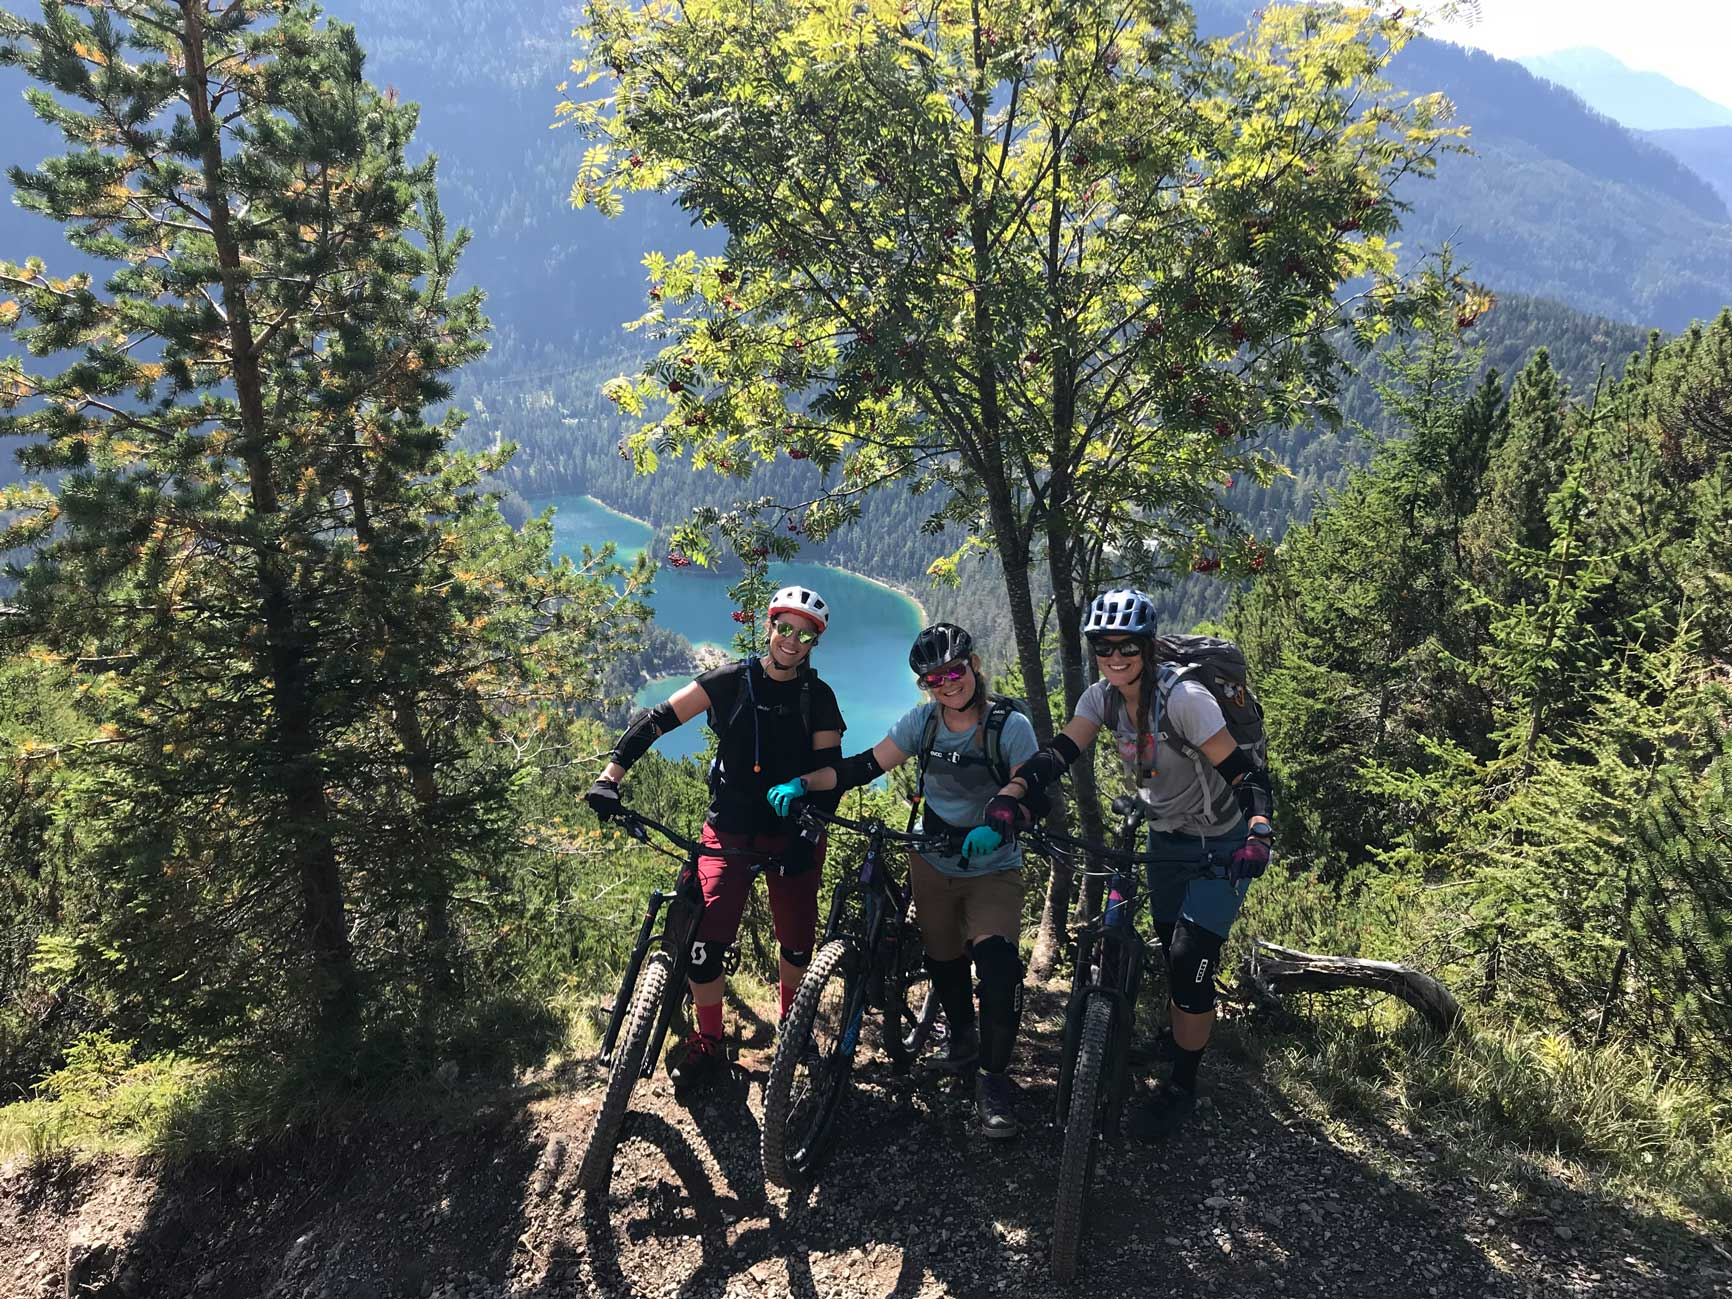 mtb-mountainbiken-tiroler-zugspitz-arena-munichmountaingirls